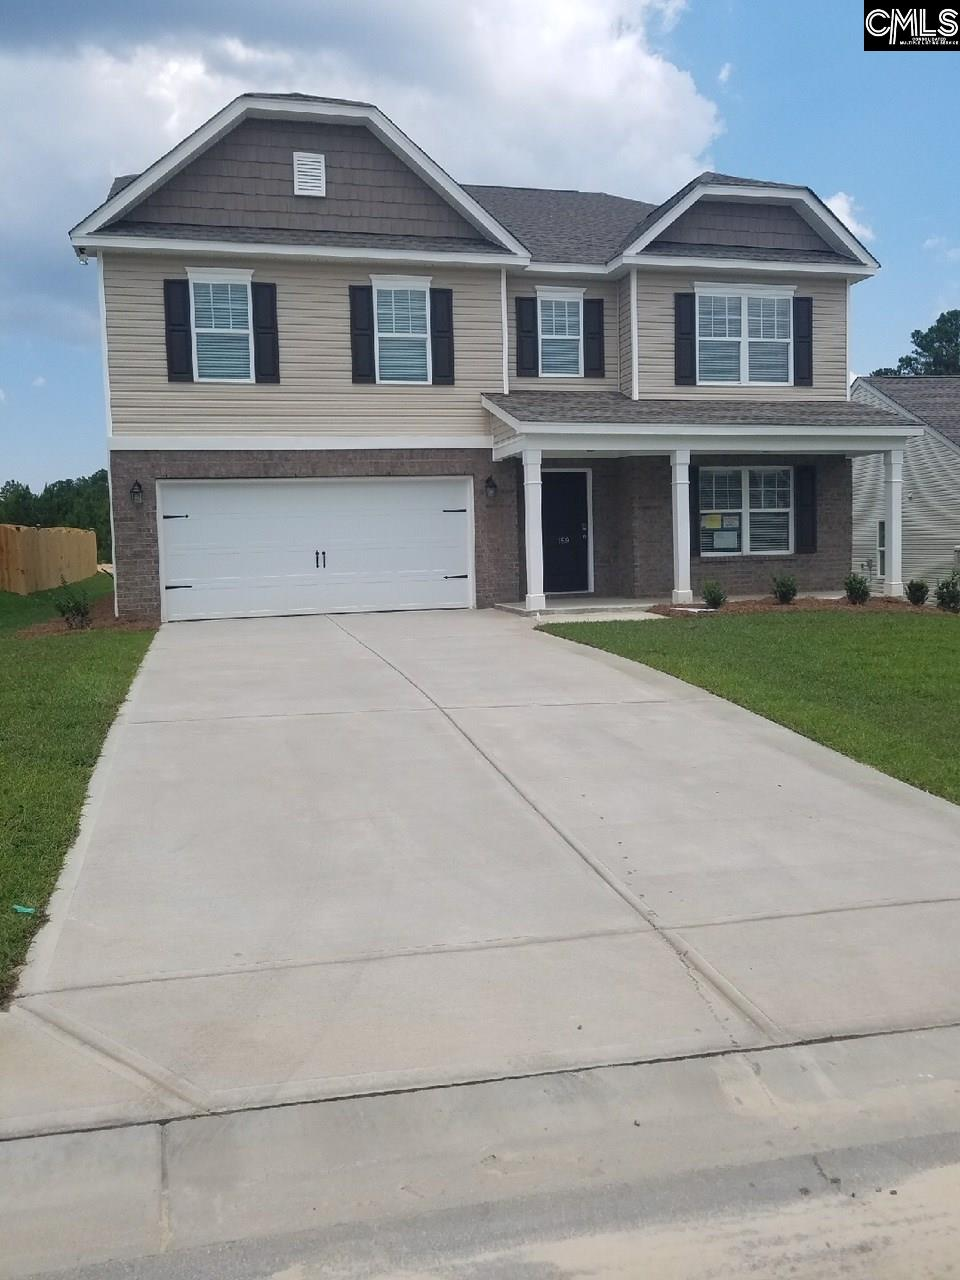 159 Turnfield West Columbia, SC 29170